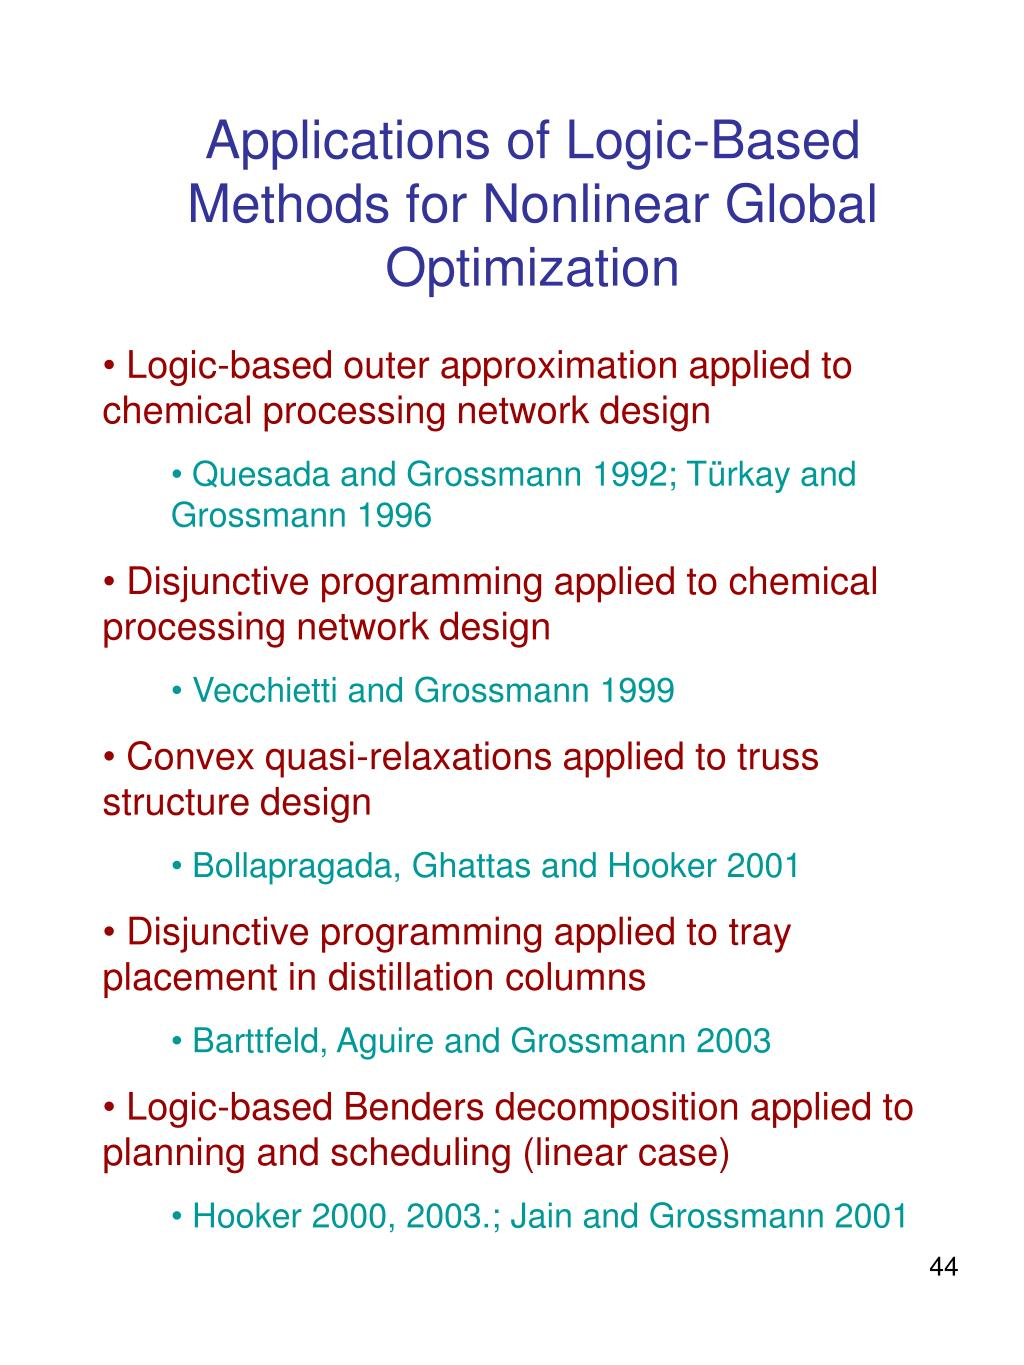 Applications of Logic-Based Methods for Nonlinear Global Optimization